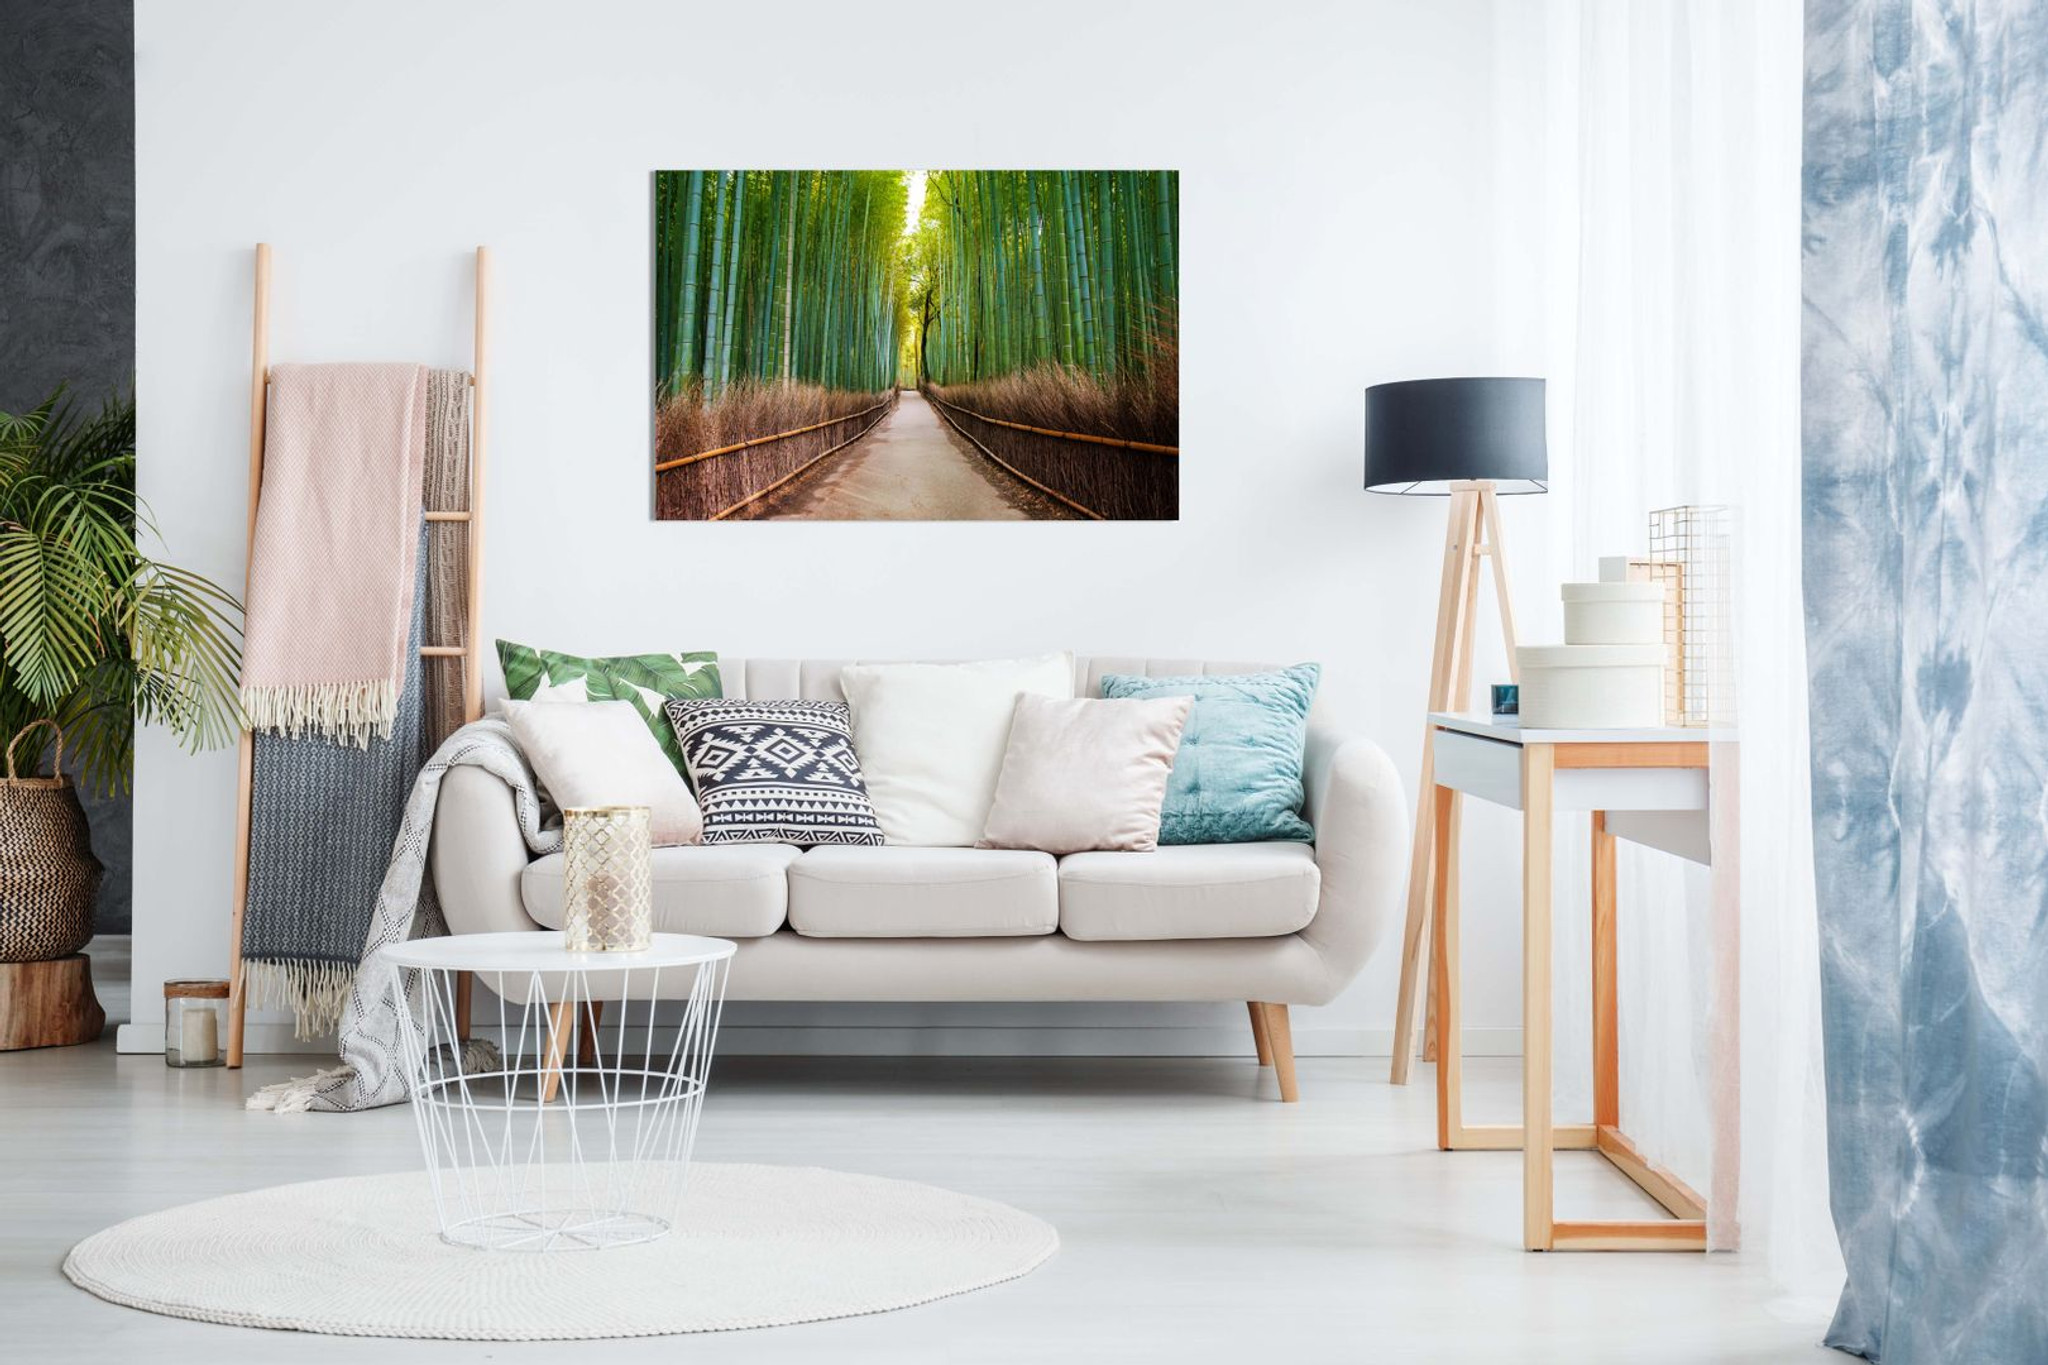 Bamboo Forest Japan Green Trees Landscape Canvas